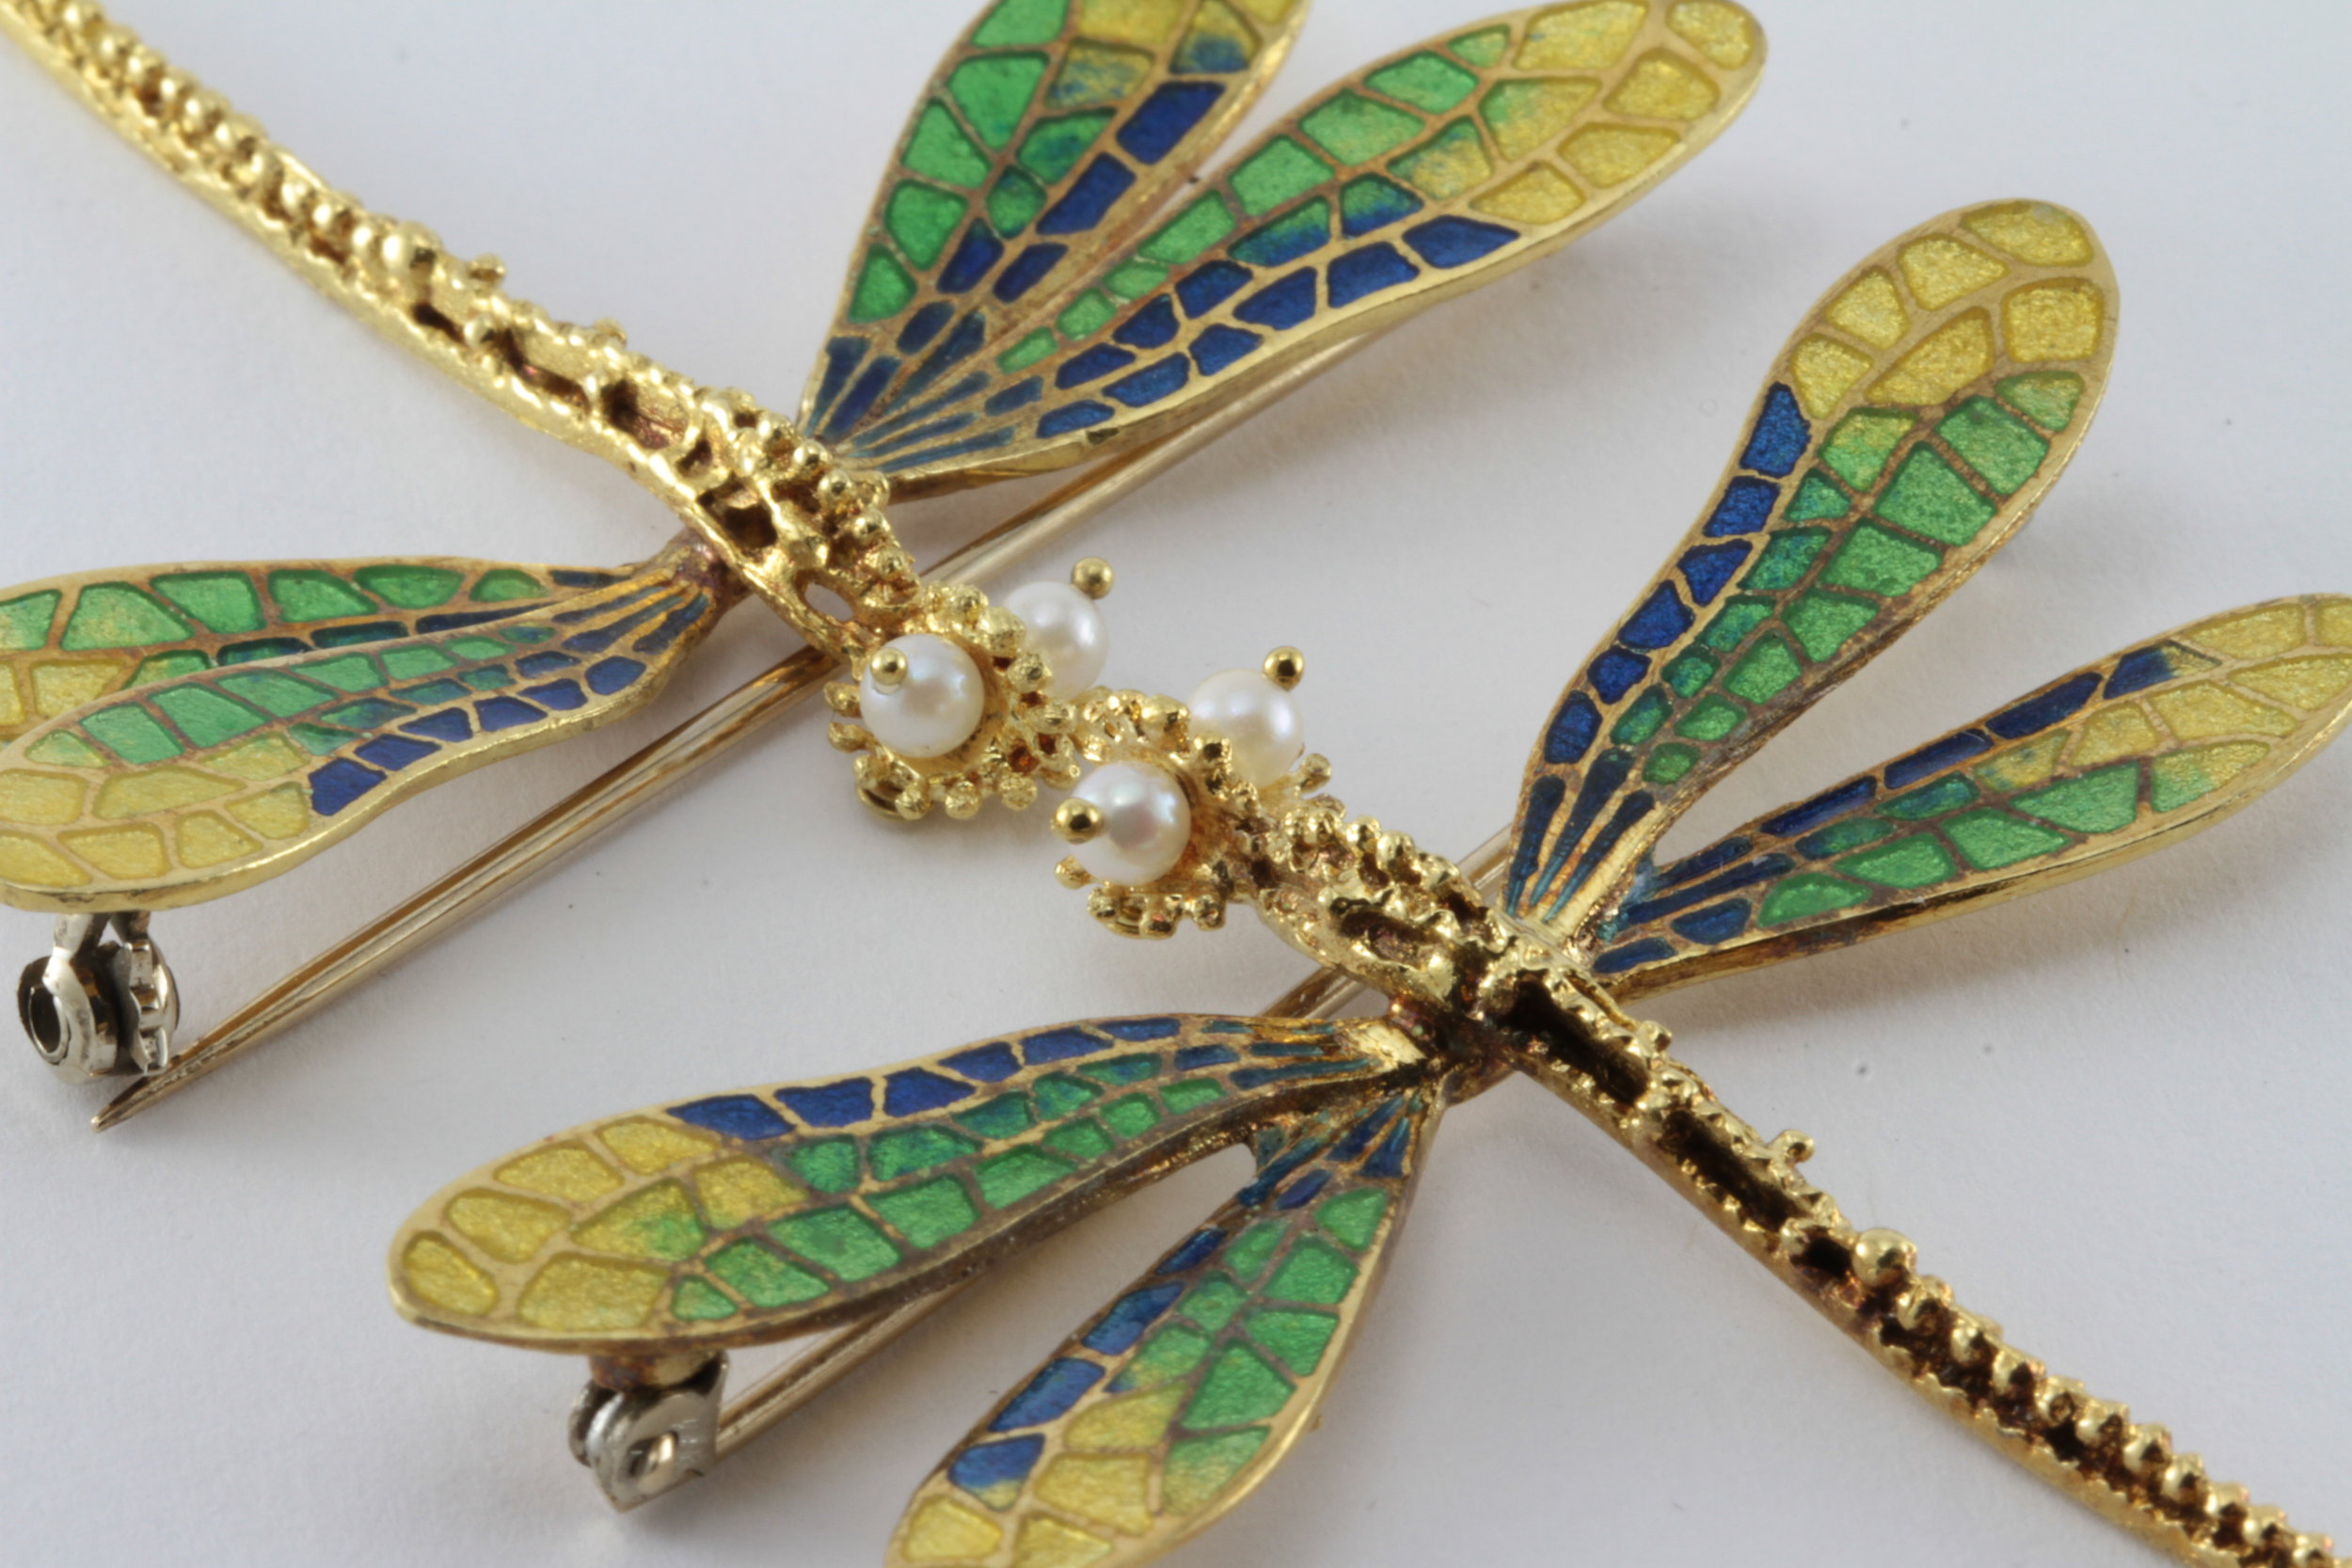 RARE A PAIR OF ENAMEL DRAGONFLIES IN 18K GOLD - (SEE WHAT OTHER PICTURES, SIDE BY SIDE)